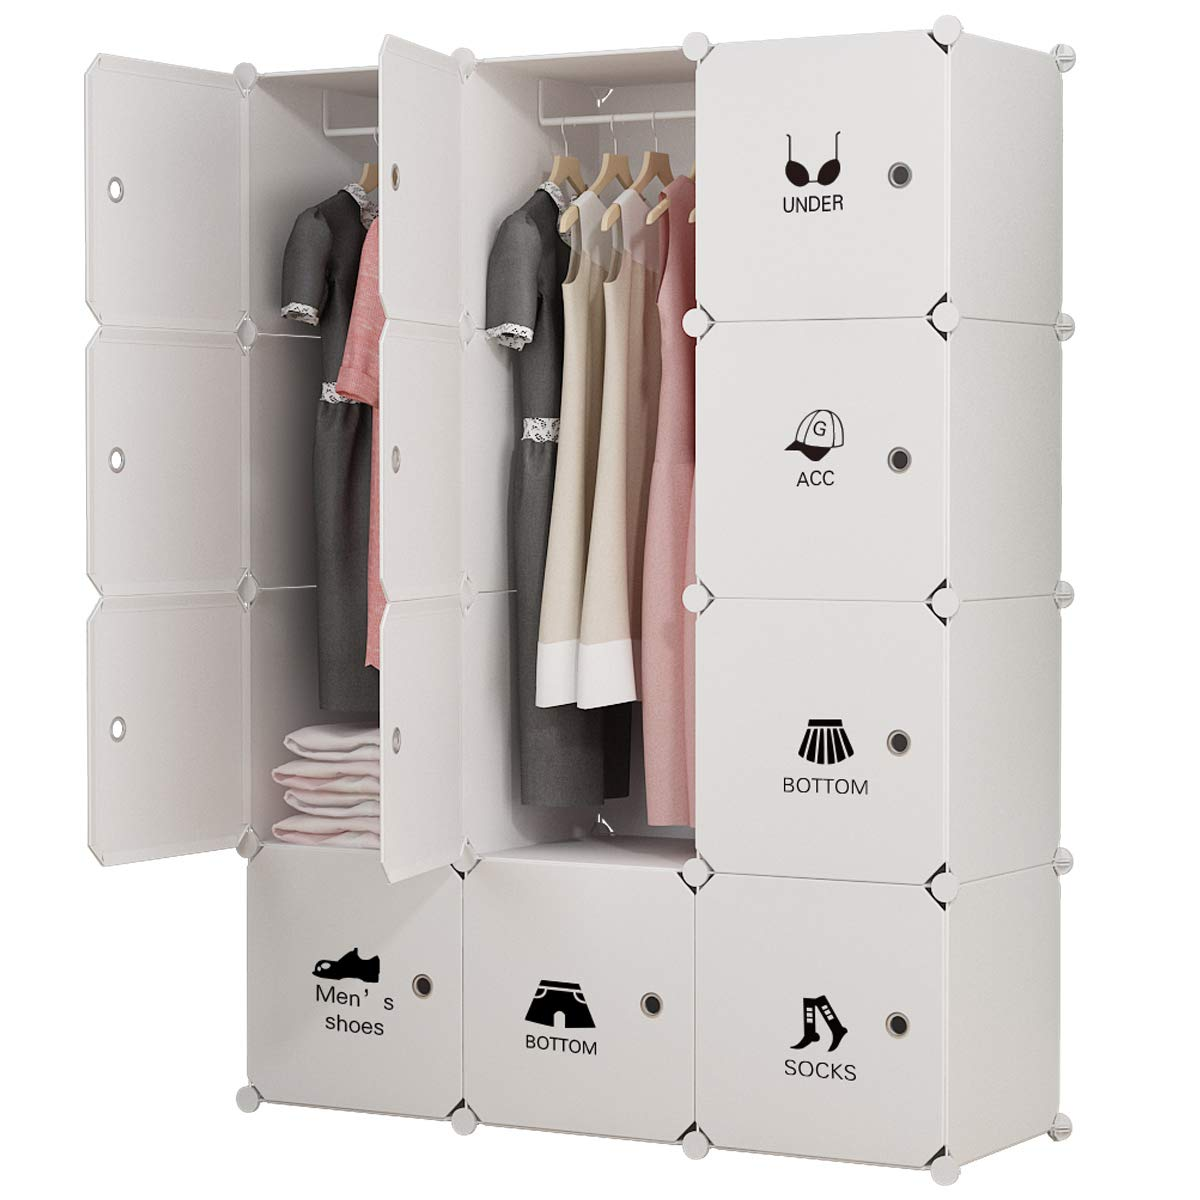 KOUSI Portable Clothes Closet Wardrobe Bedroom Armoire Dresser Cube Storage Organizer, Capacious & Customizable, White, 6 Cubes&2 Hanging Sections